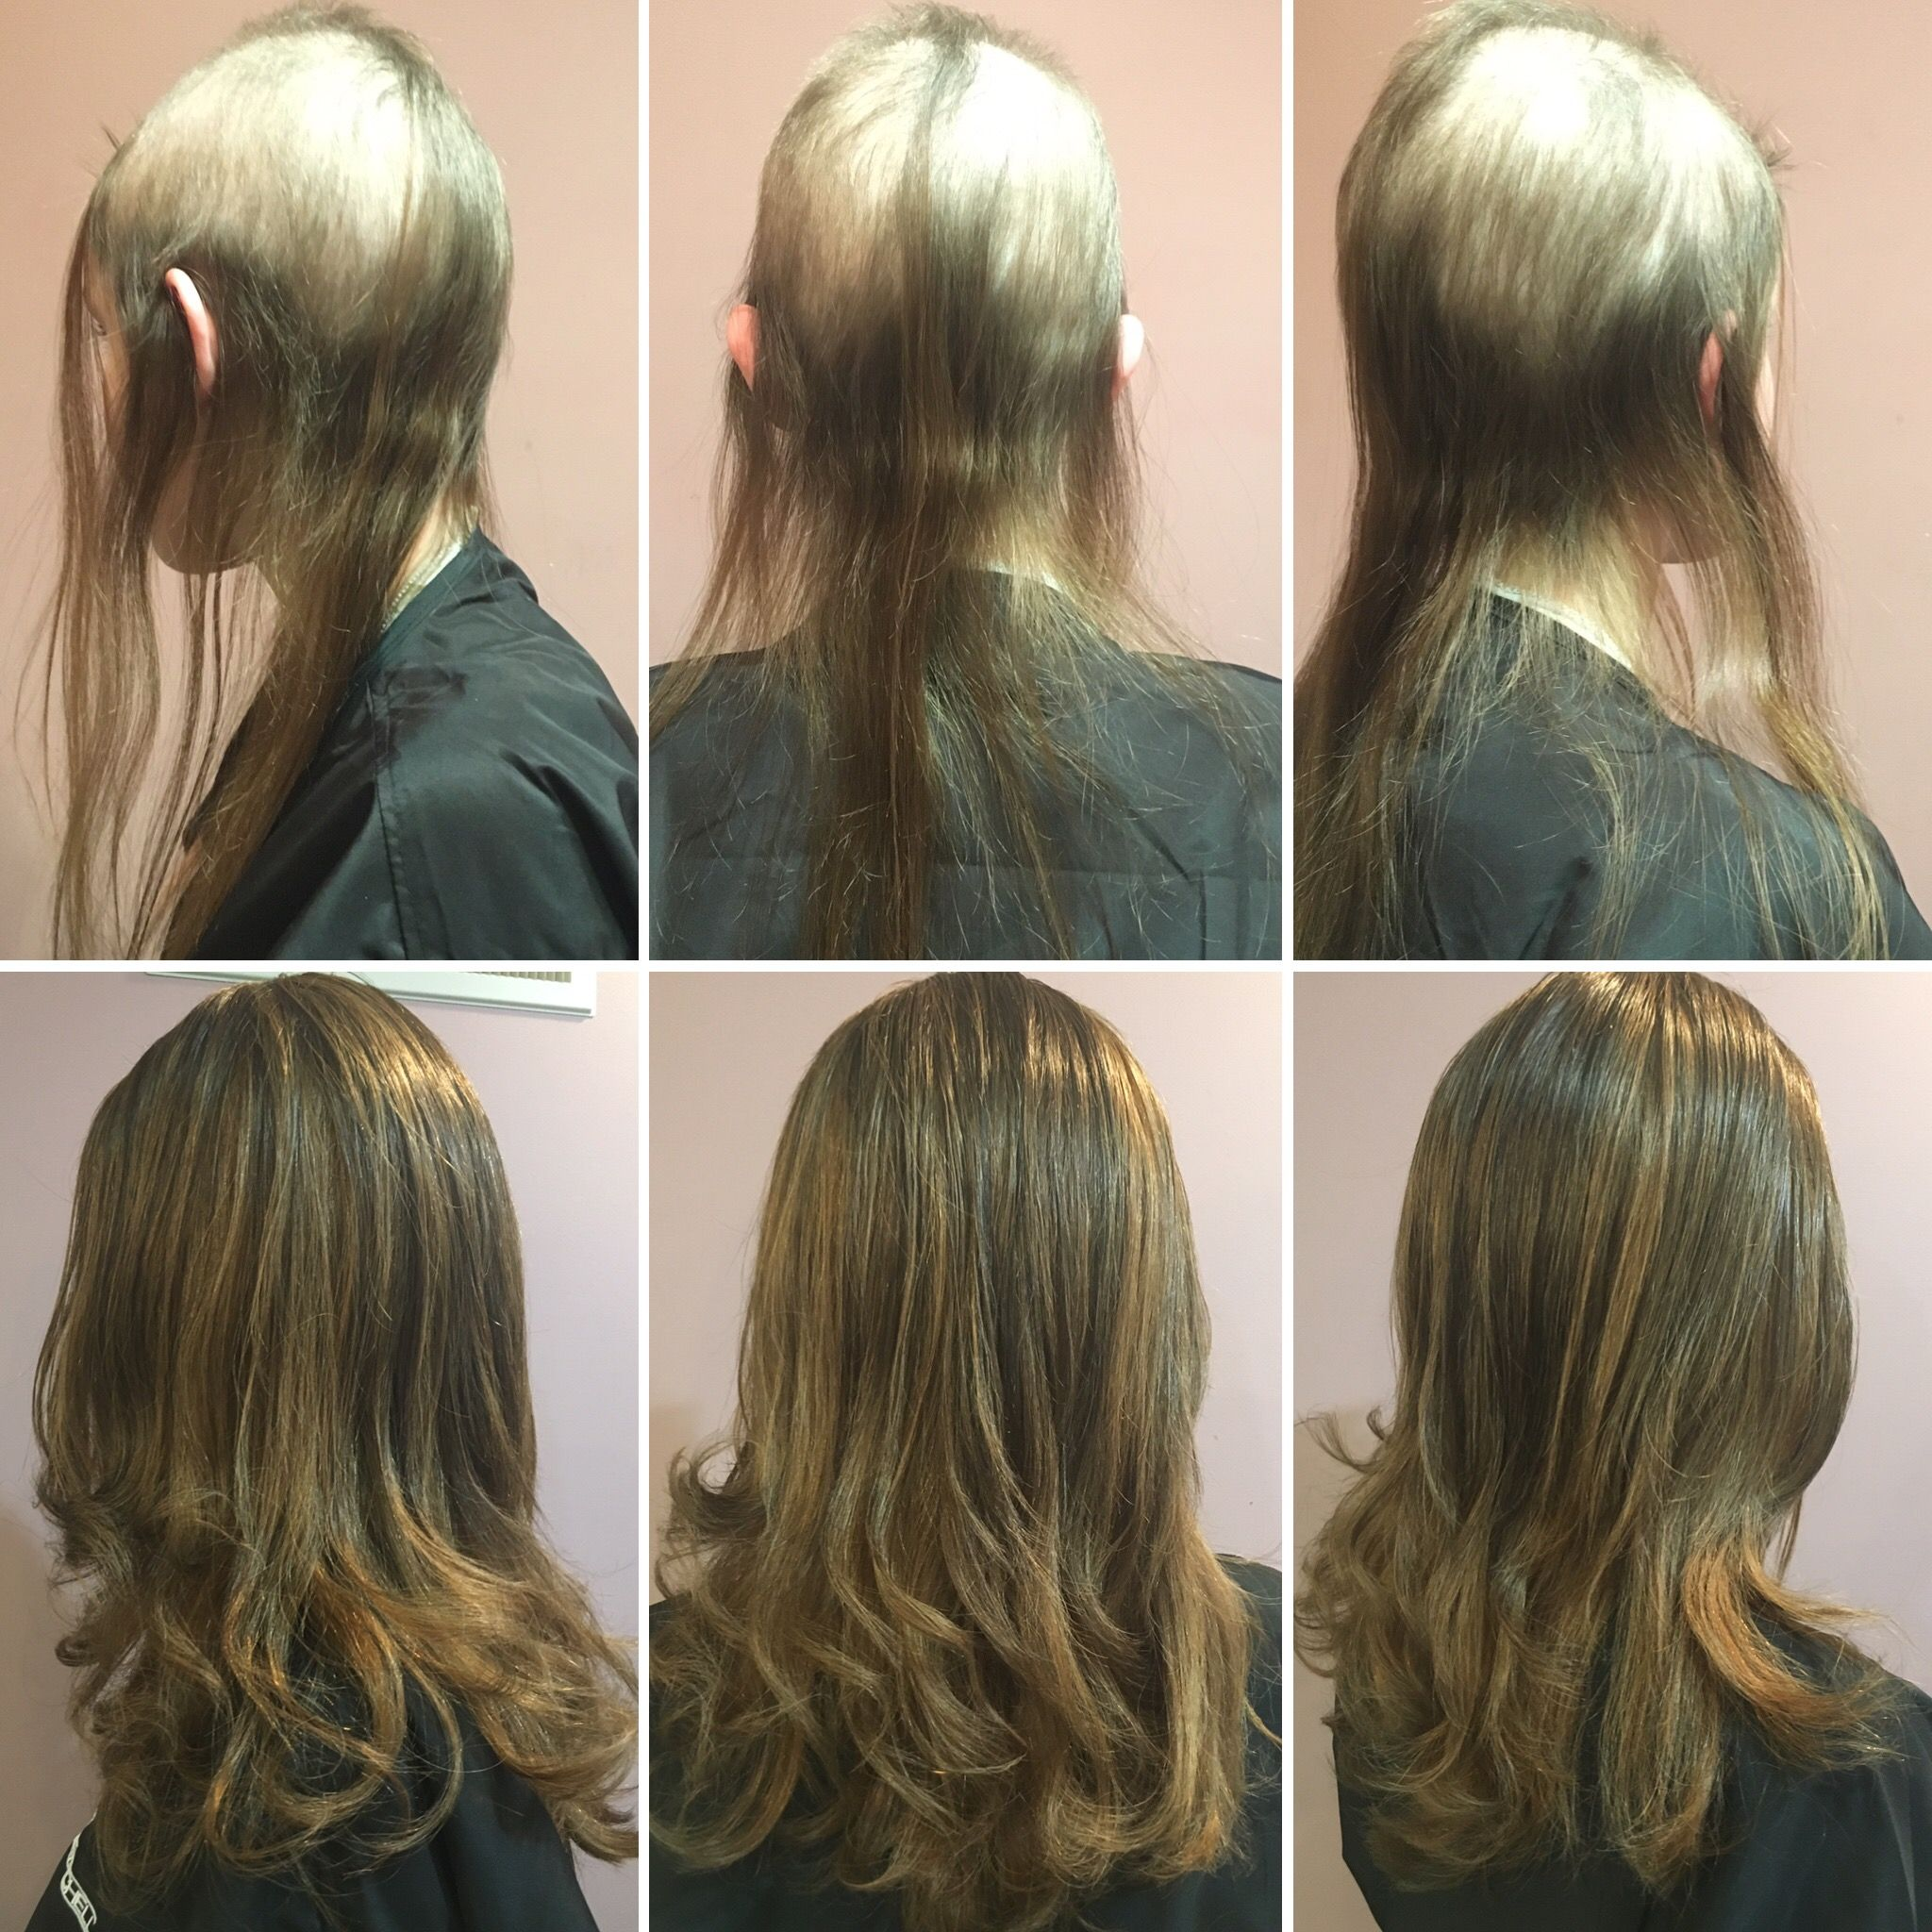 Trichotillomania Pull Free Hair Barriers Kits So Any Child Or Adult